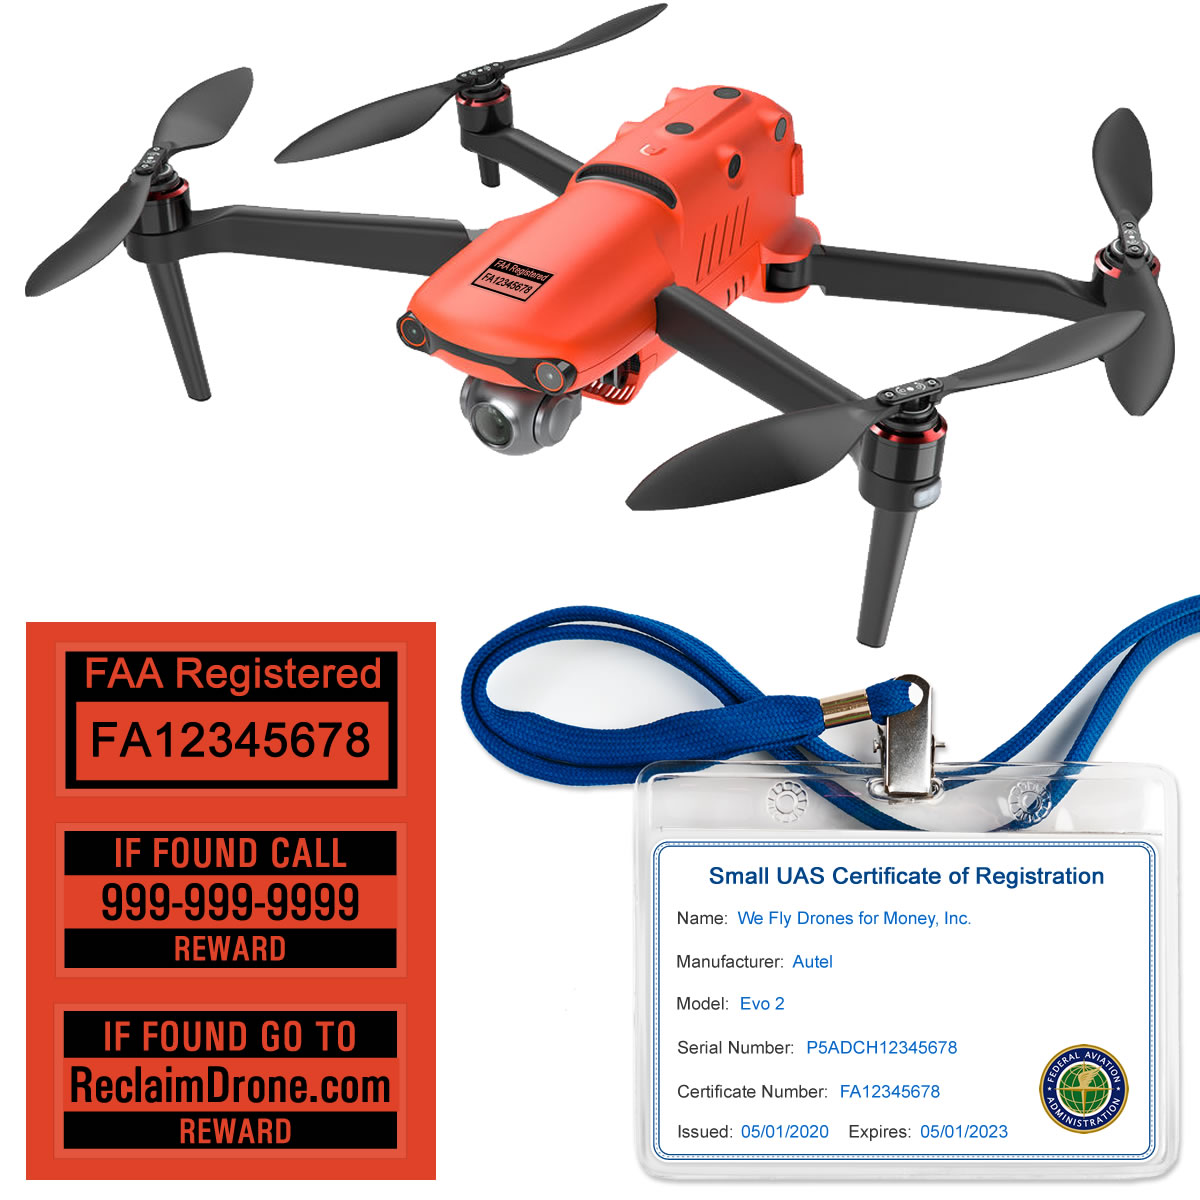 Autel Evo 2 – FAA Registration Commercial Pilot Bundle – FAA Labels, ID Card, Lanyard-2-1-black-1200px